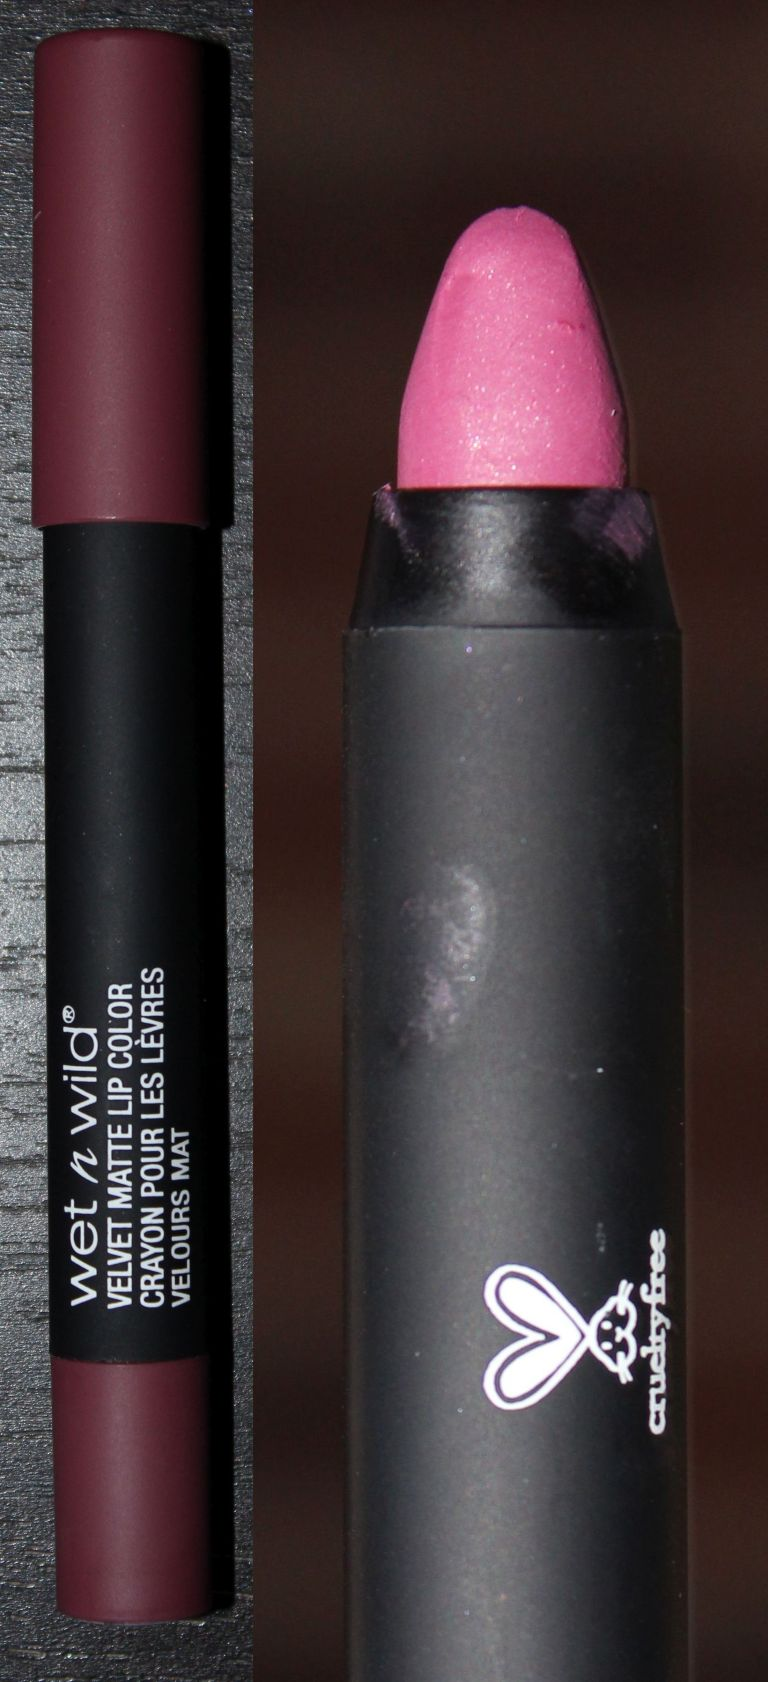 Wet n Wild Velvet Matte Lip Color in Charred Cherry